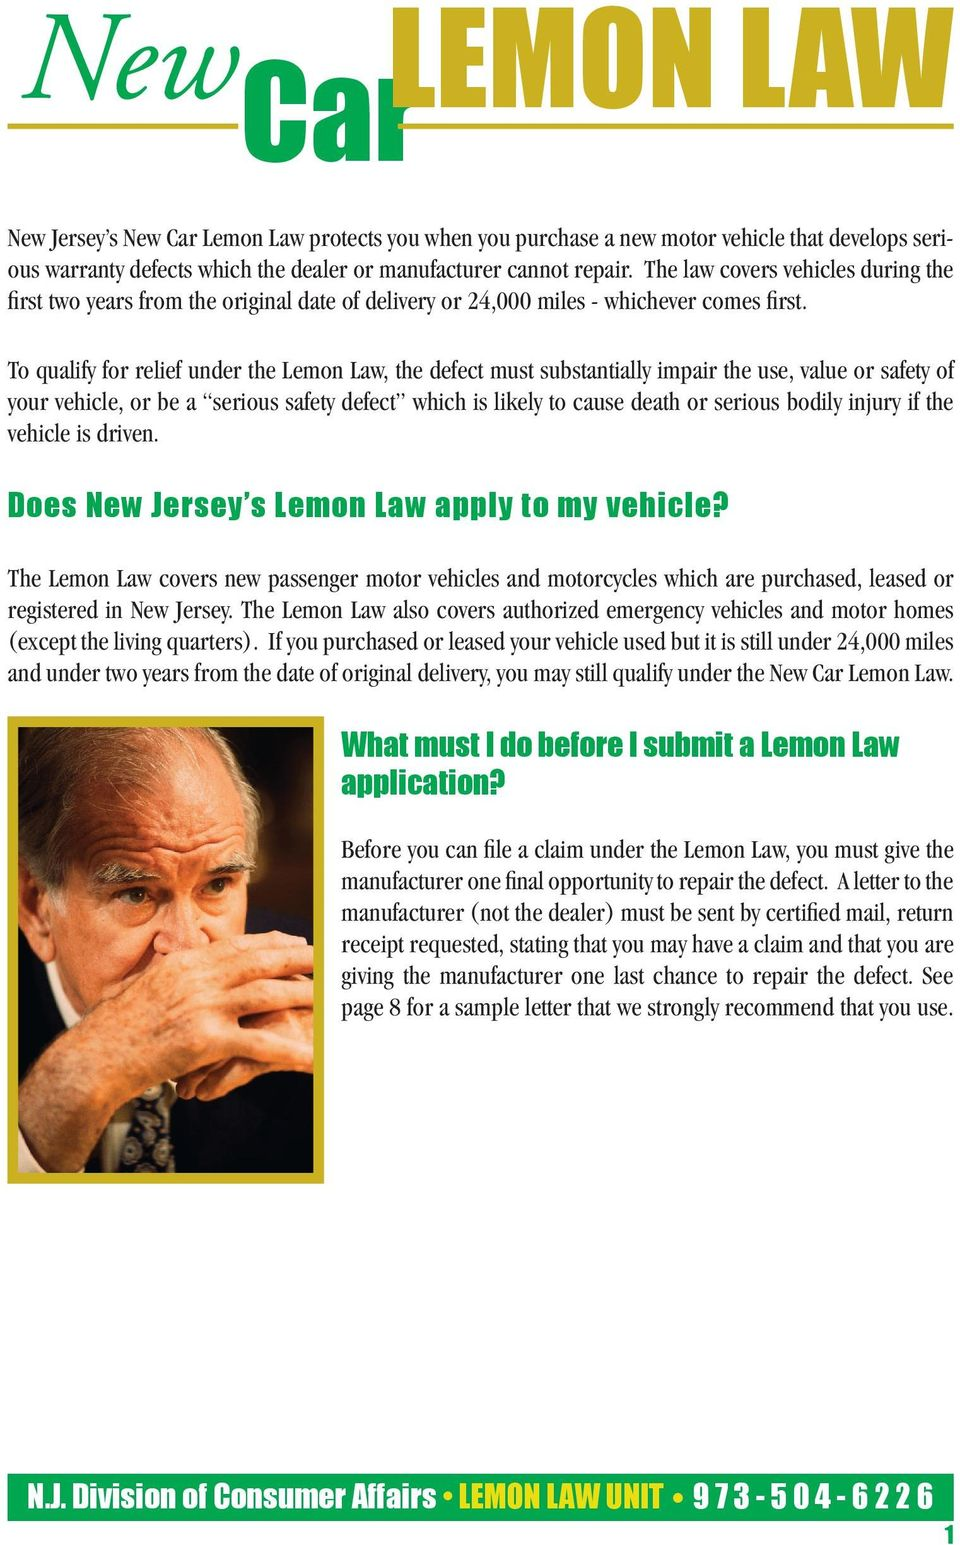 To qualify for relief under the Lemon Law, the defect must substantially impair the use, value or safety of your vehicle, or be a serious safety defect which is likely to cause death or serious